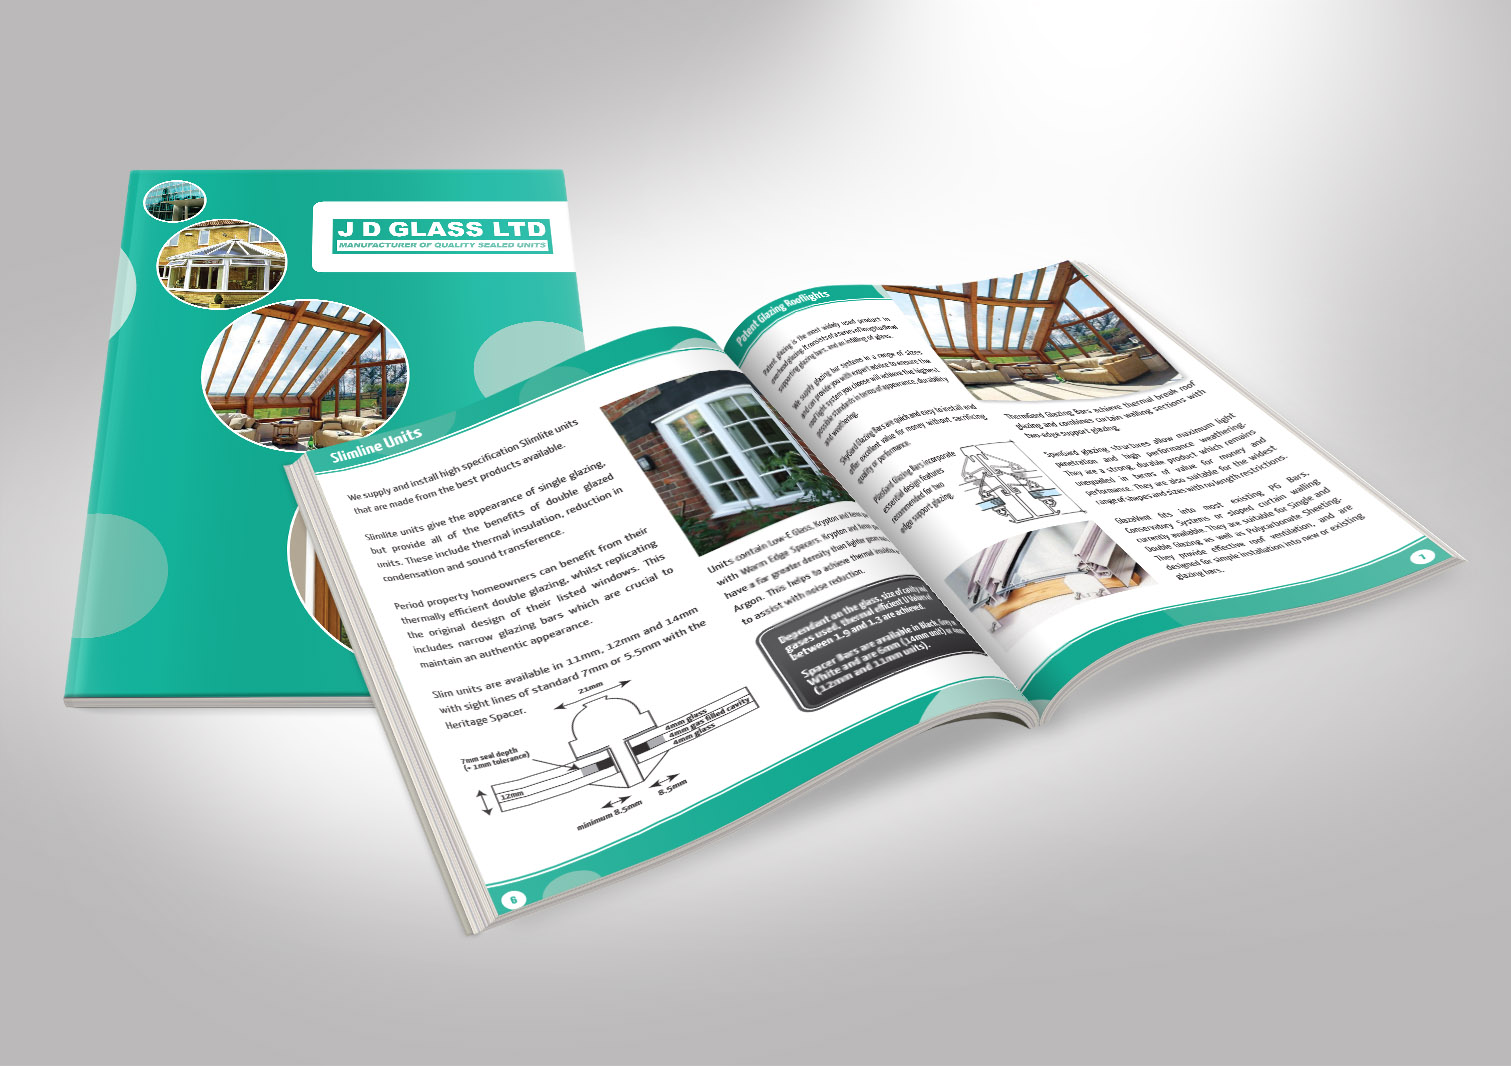 JD Glass Limited Brochures Booklets Front and Inside